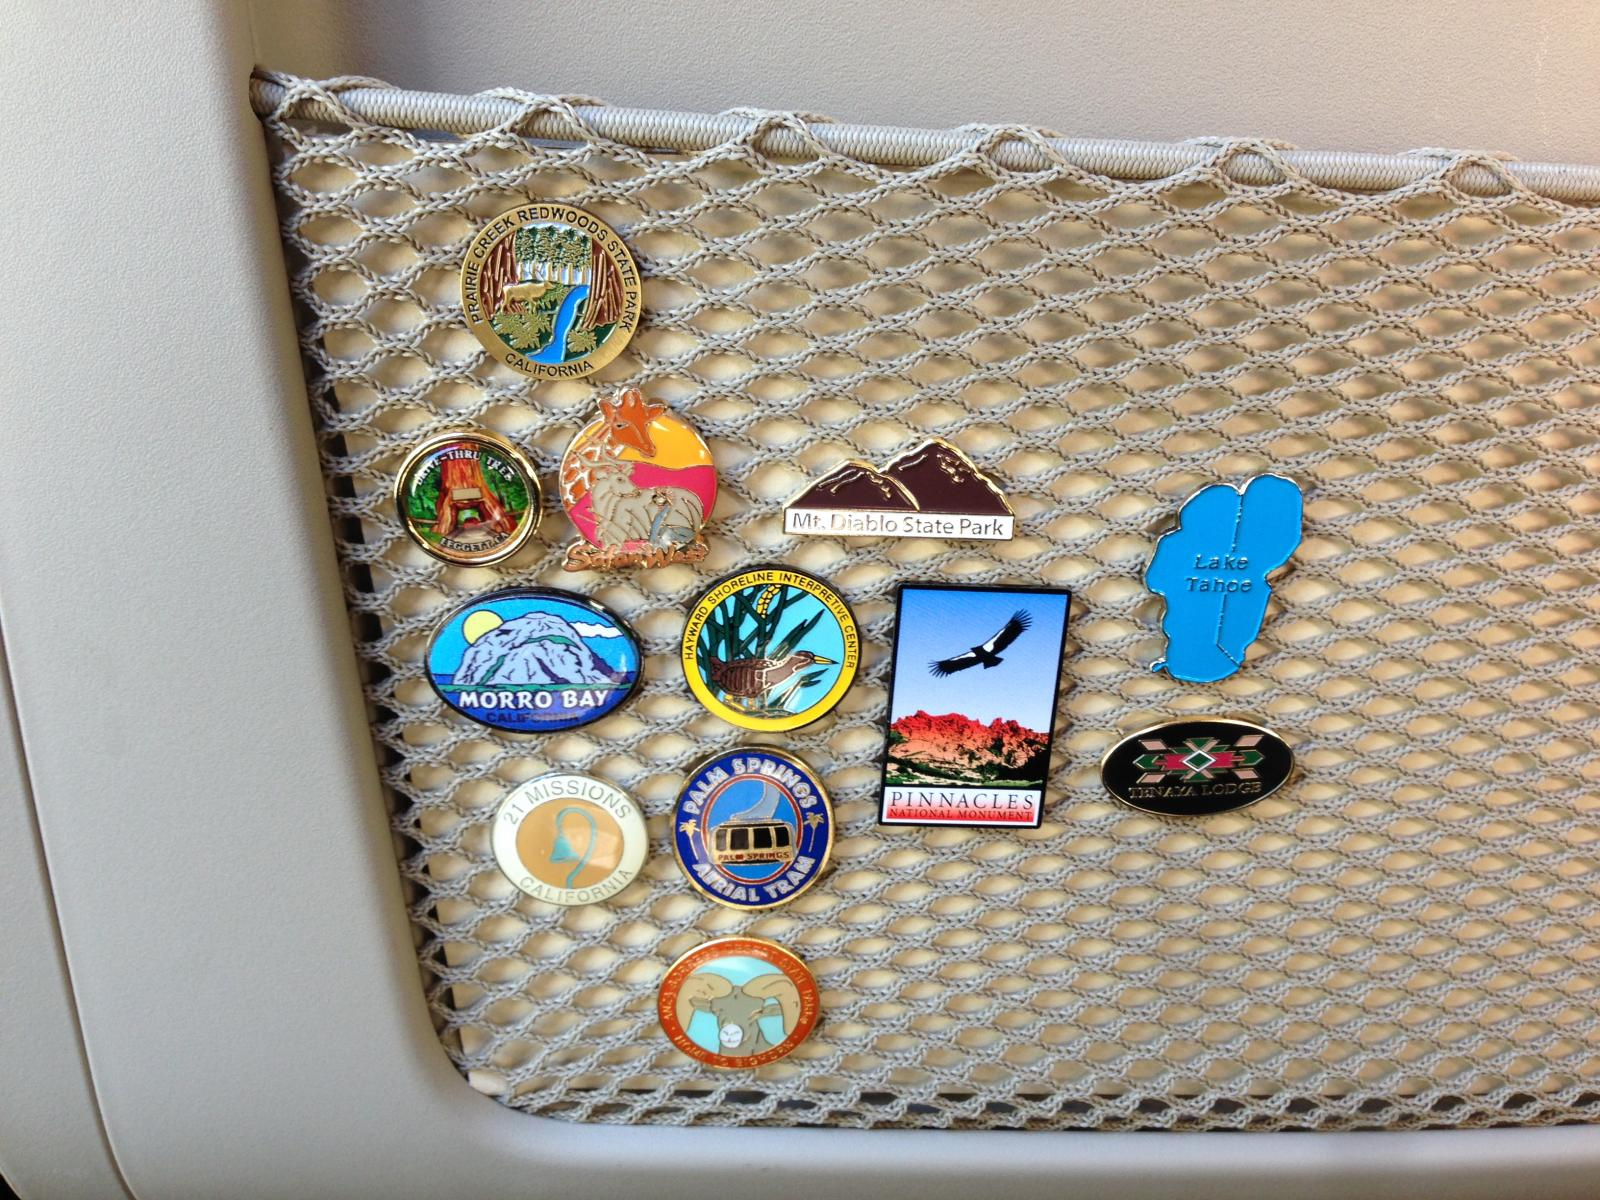 Pins from WK2 destinations